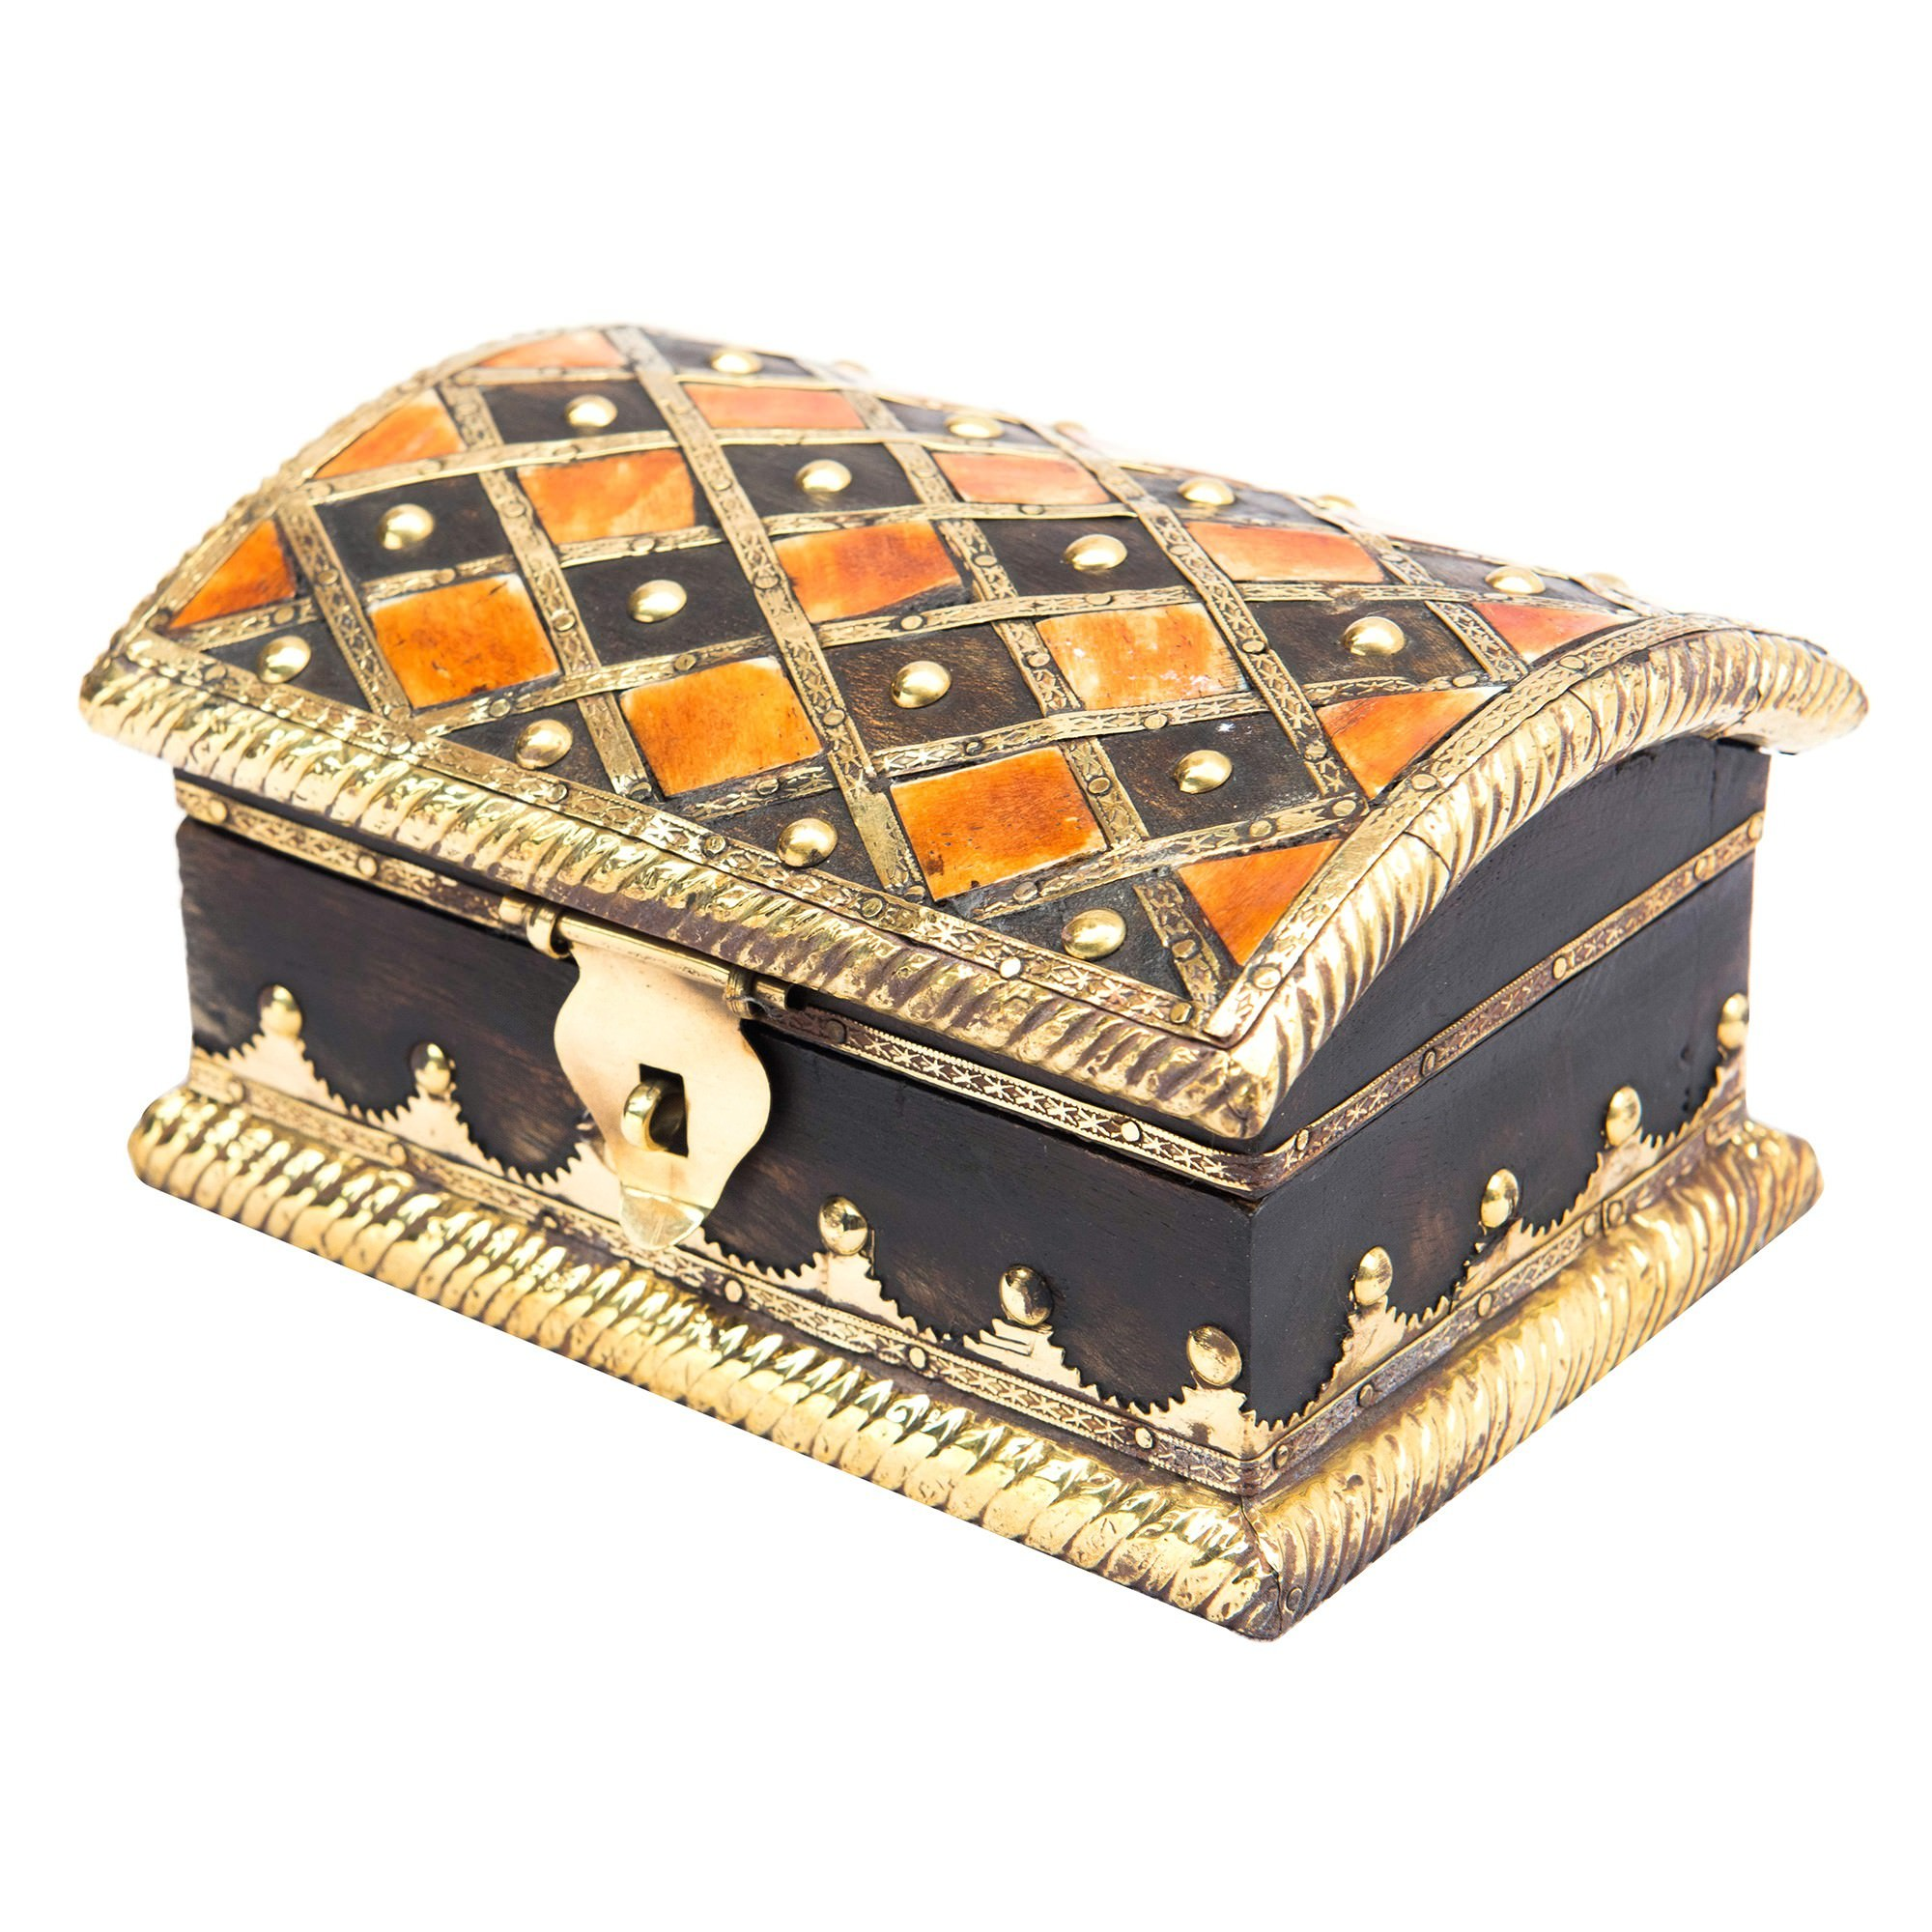 Boga Brass & Bone Inlay Timber Storage Box